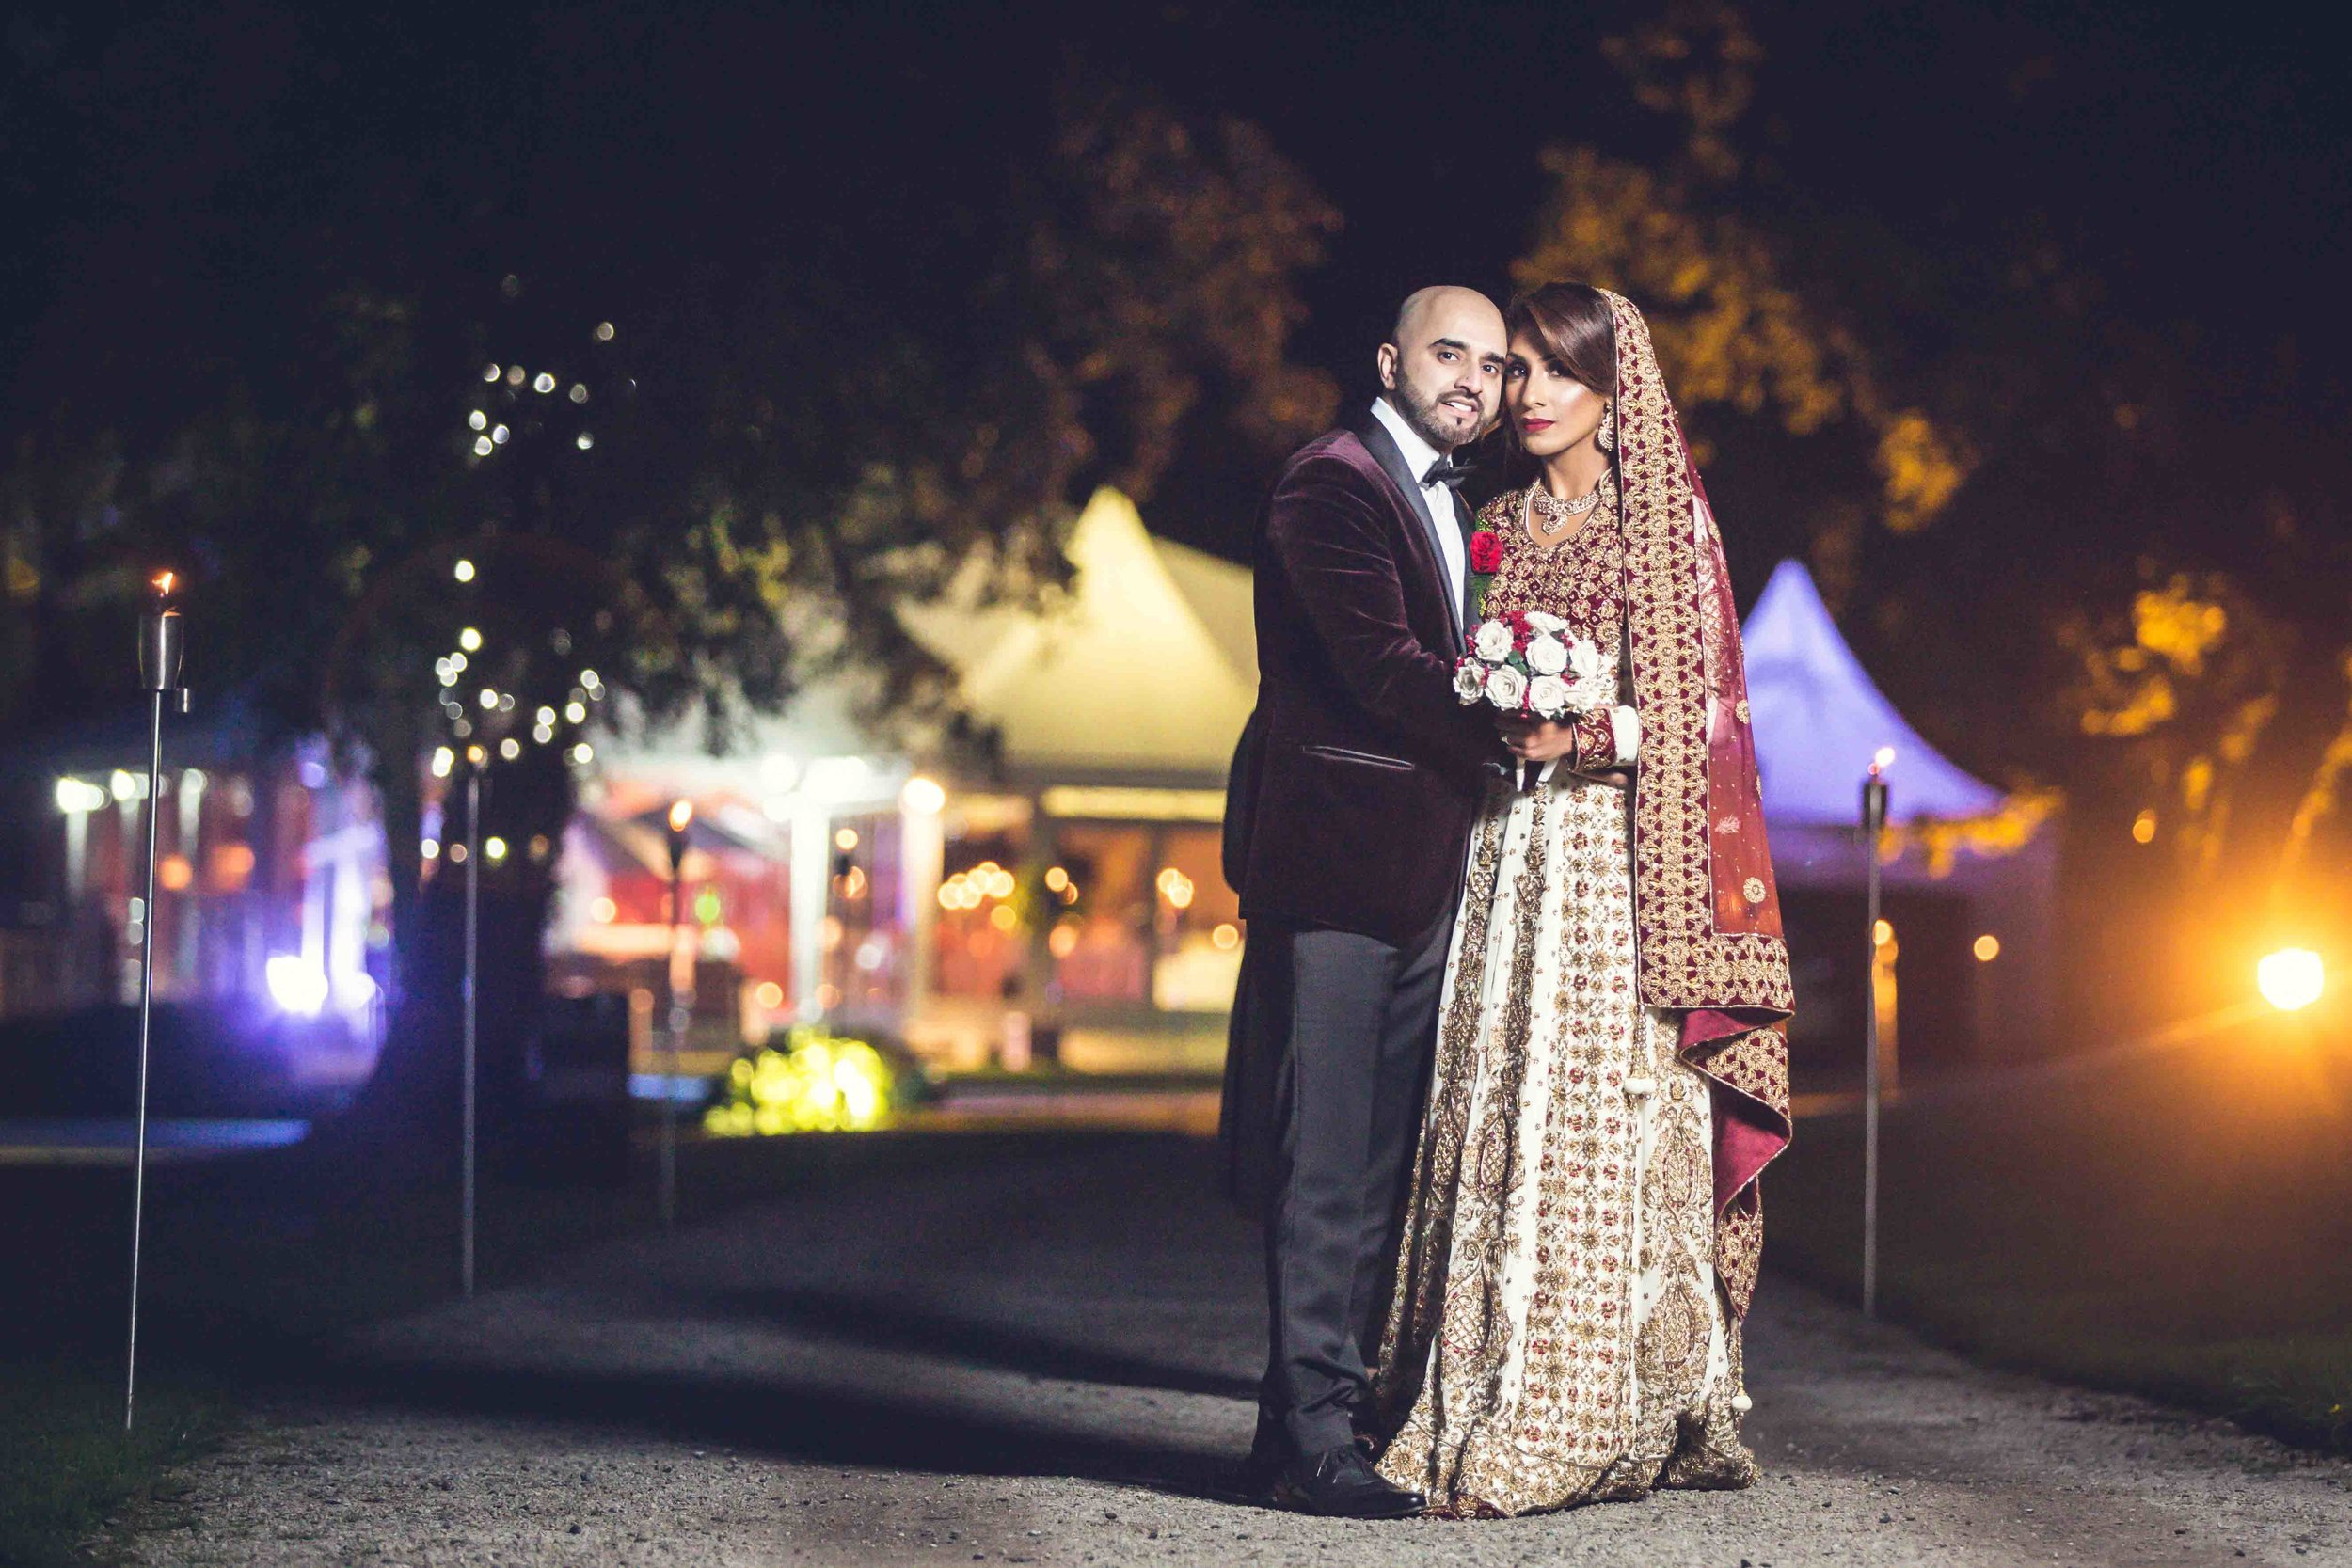 Asian Wedding Photographer Opu Sultan Photography Lyme Park Scotland Edinburgh Glasgow London Manchester Liverpool Birmingham Wedding Photos prewed shoot Azman & Saira Blog-128.jpg